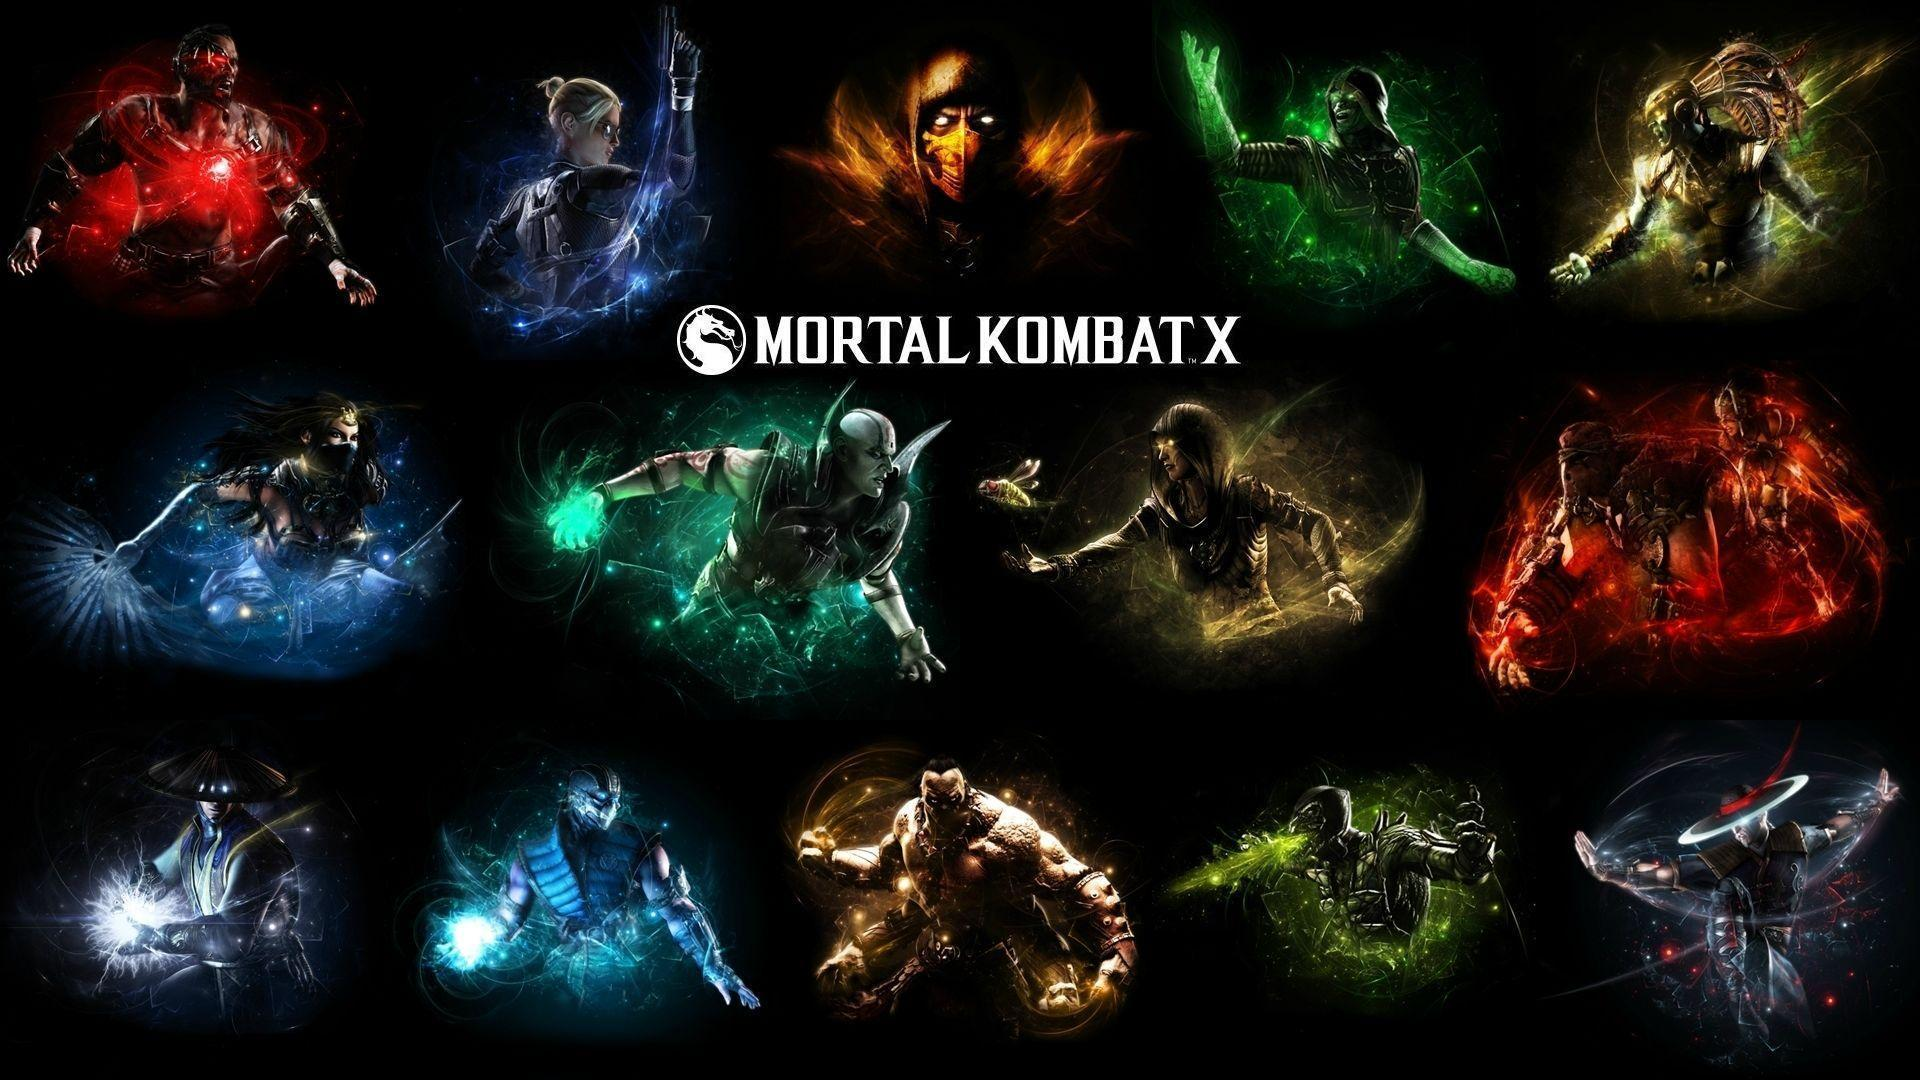 Mortal Kombat X SubZero Vs Scorpion HD Desktop Wallpaper High